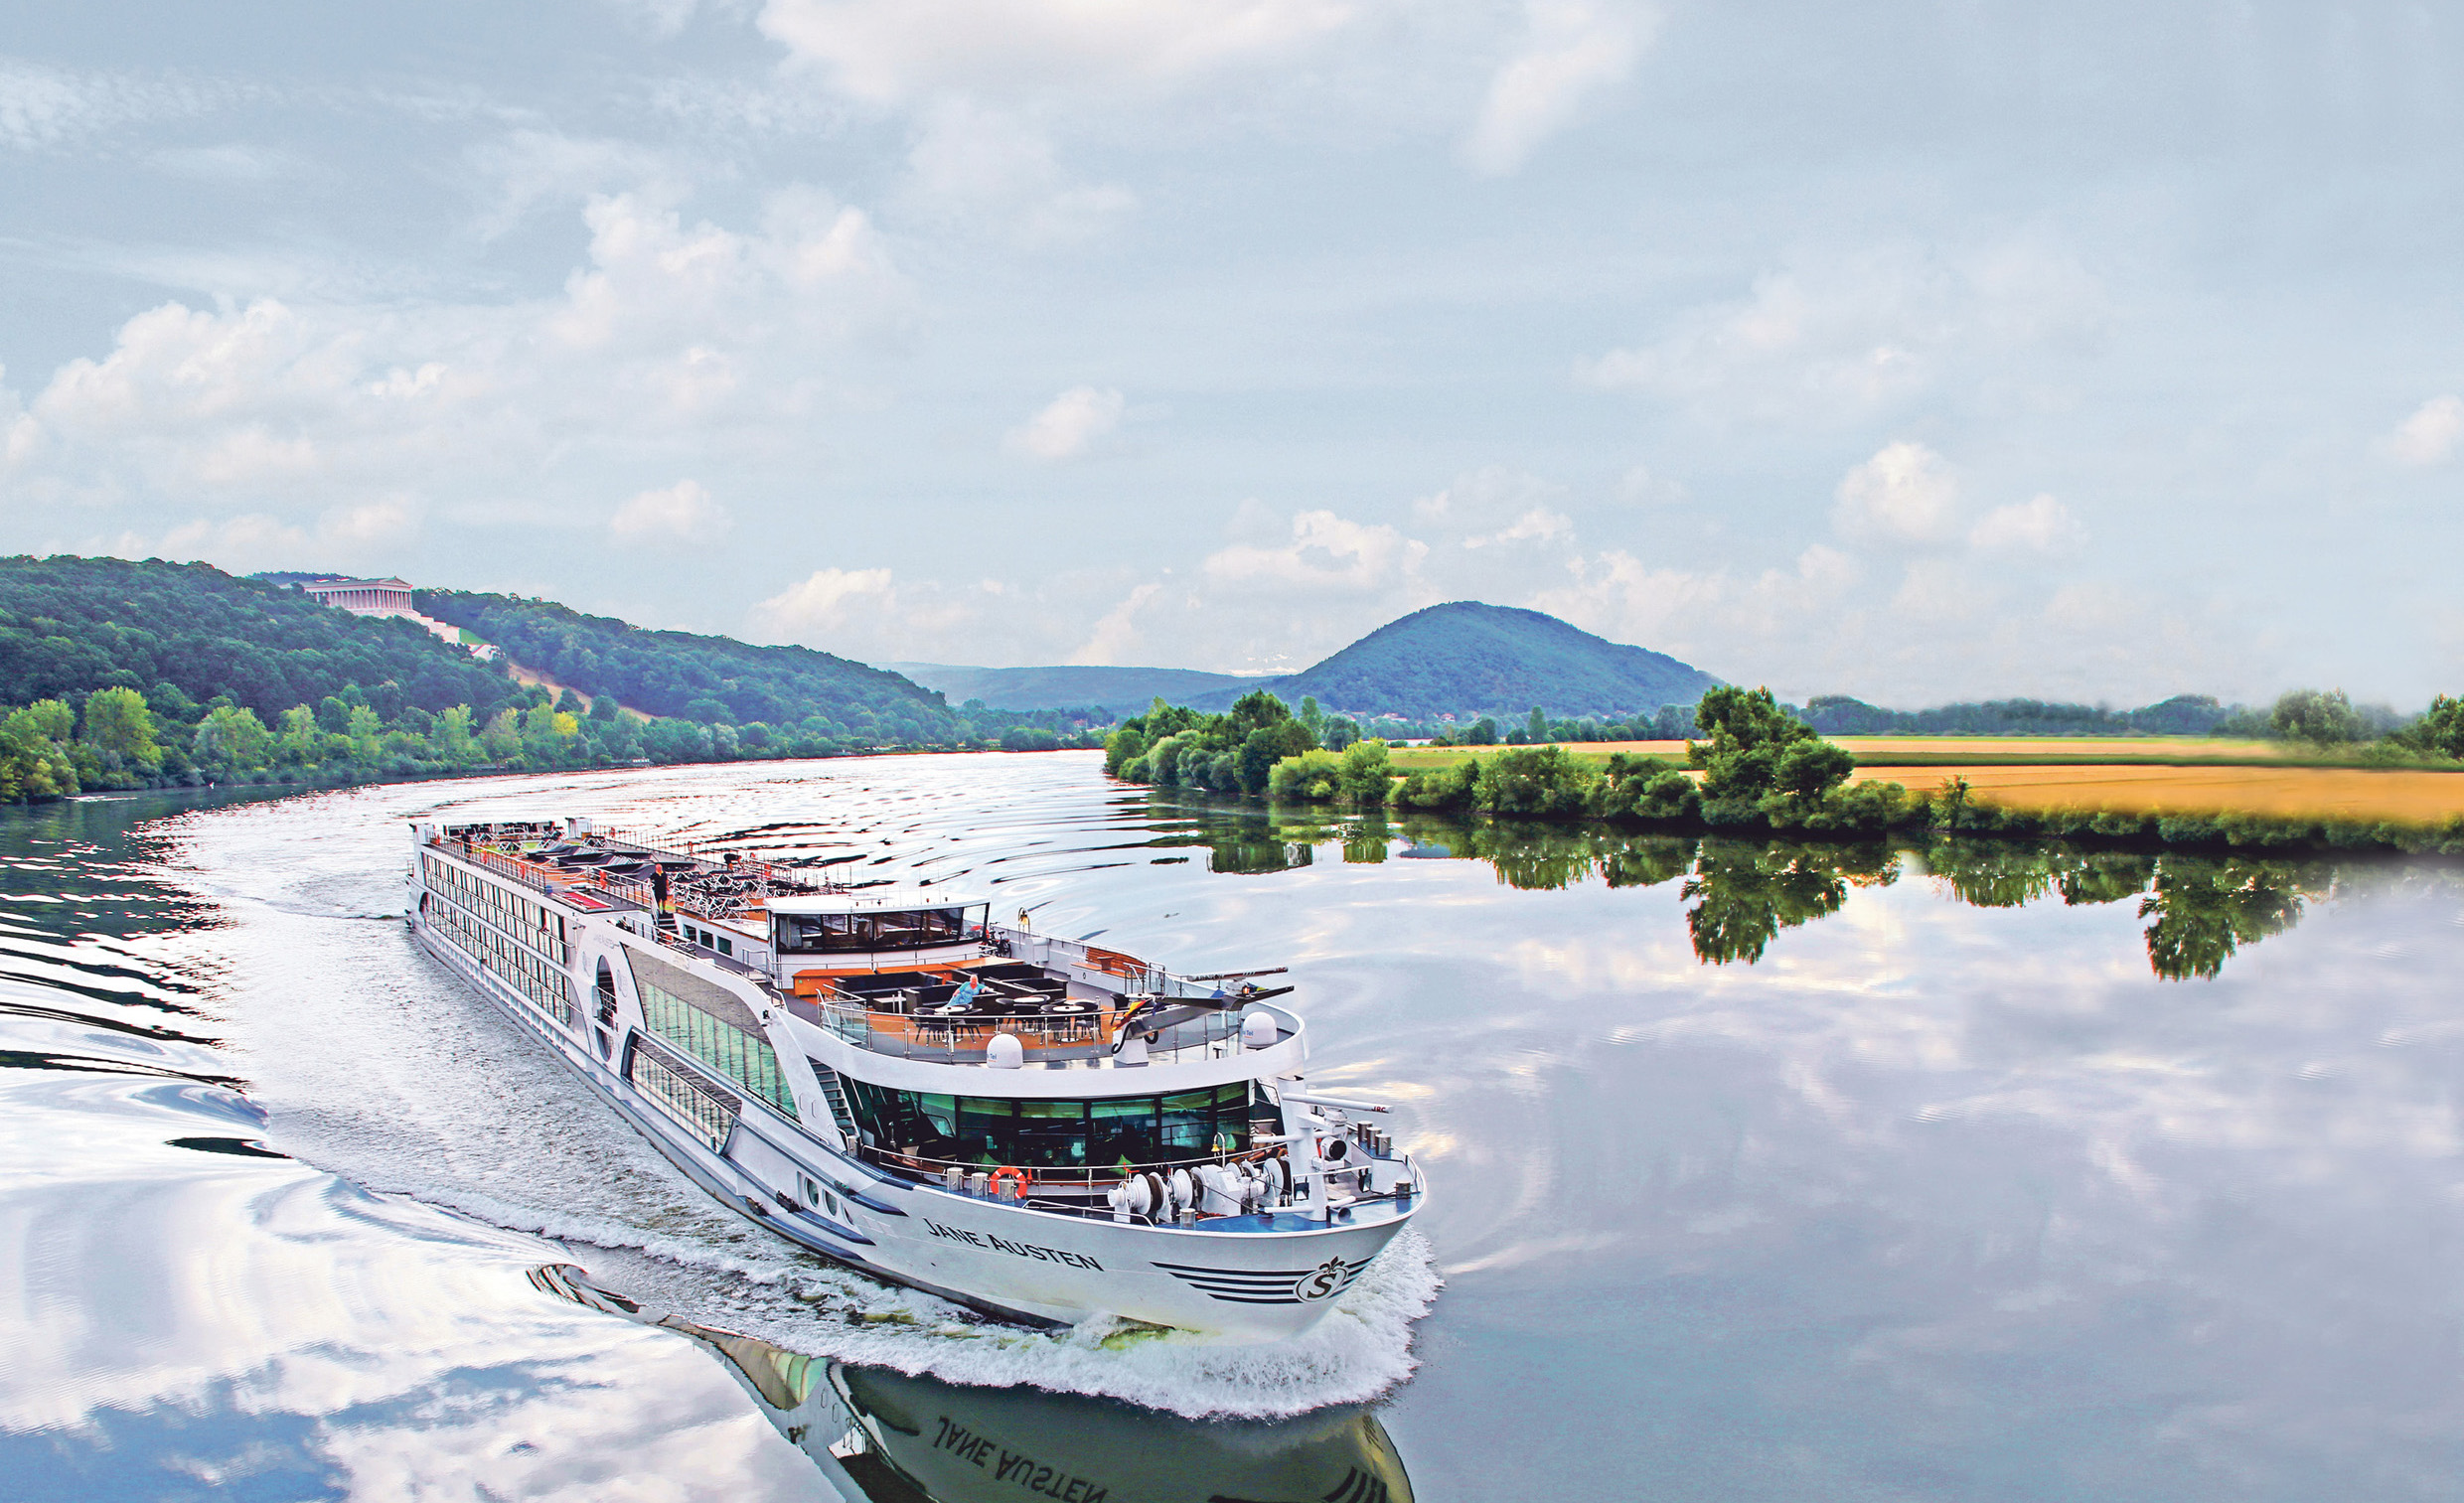 Jane Austen on the Danube